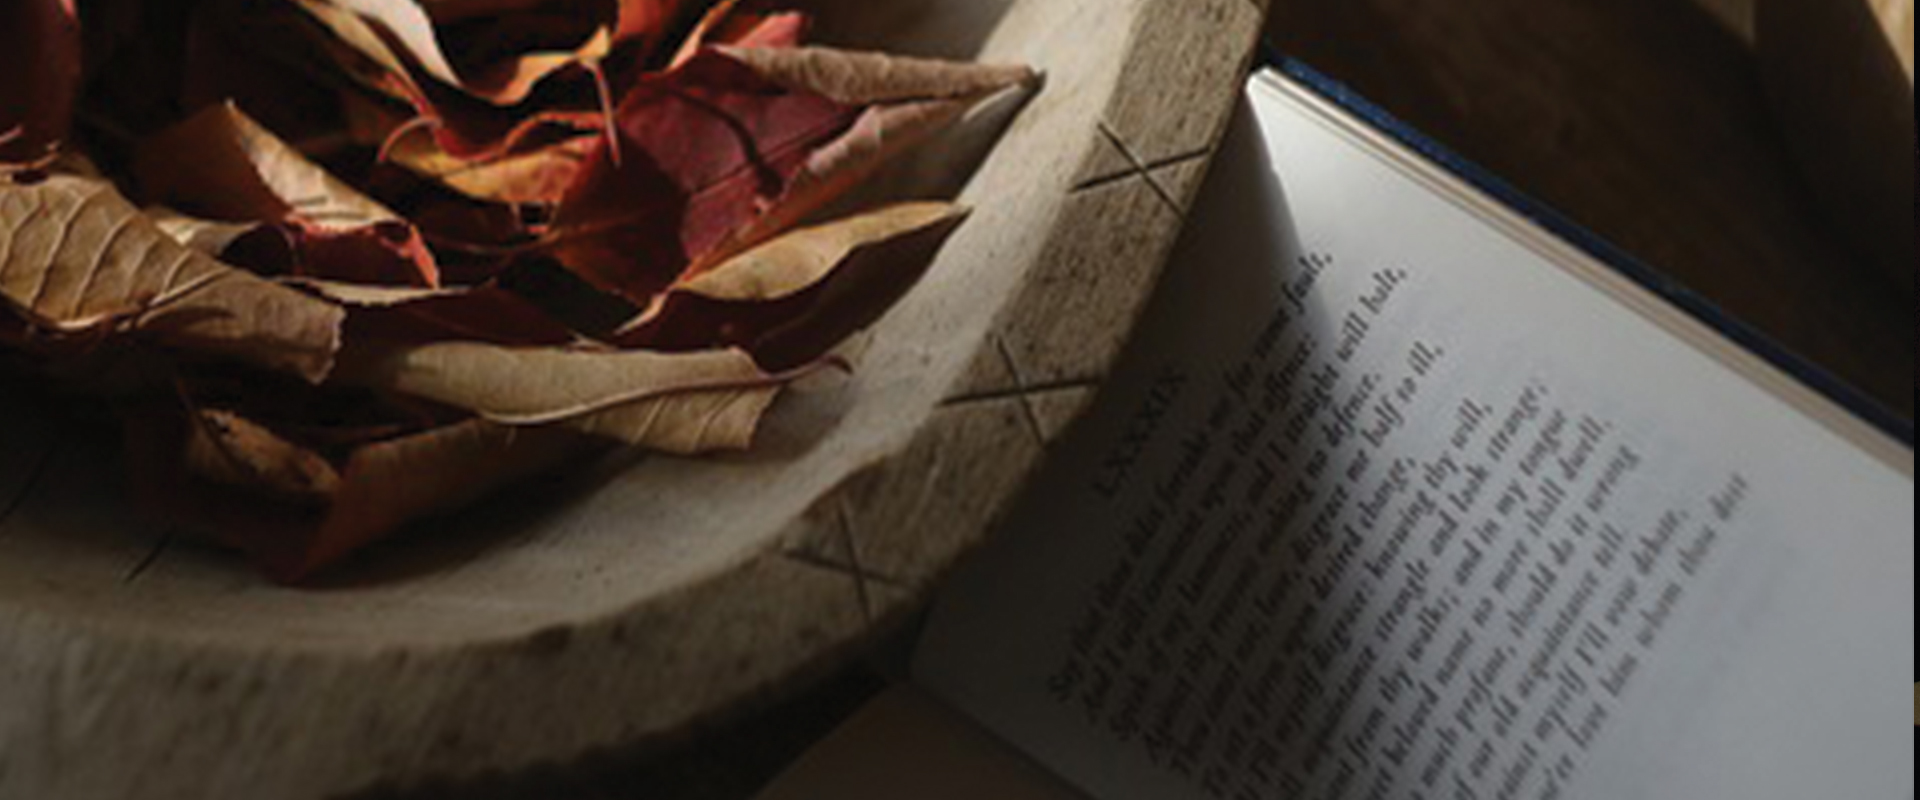 a photo of a bowl of leaves and a book of poems